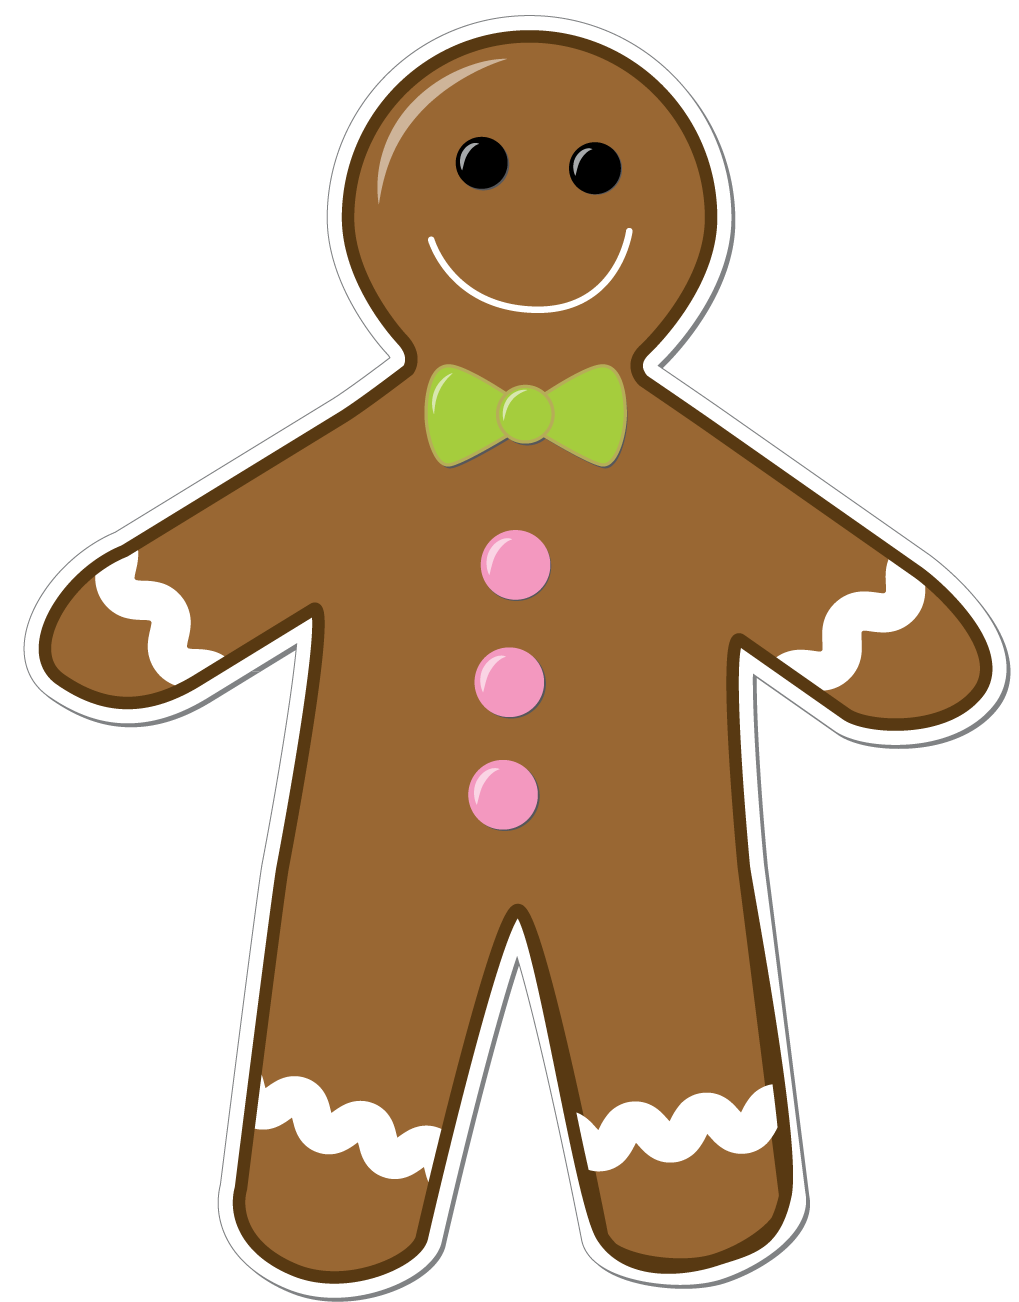 Gingerbread man png. Collection of clipart